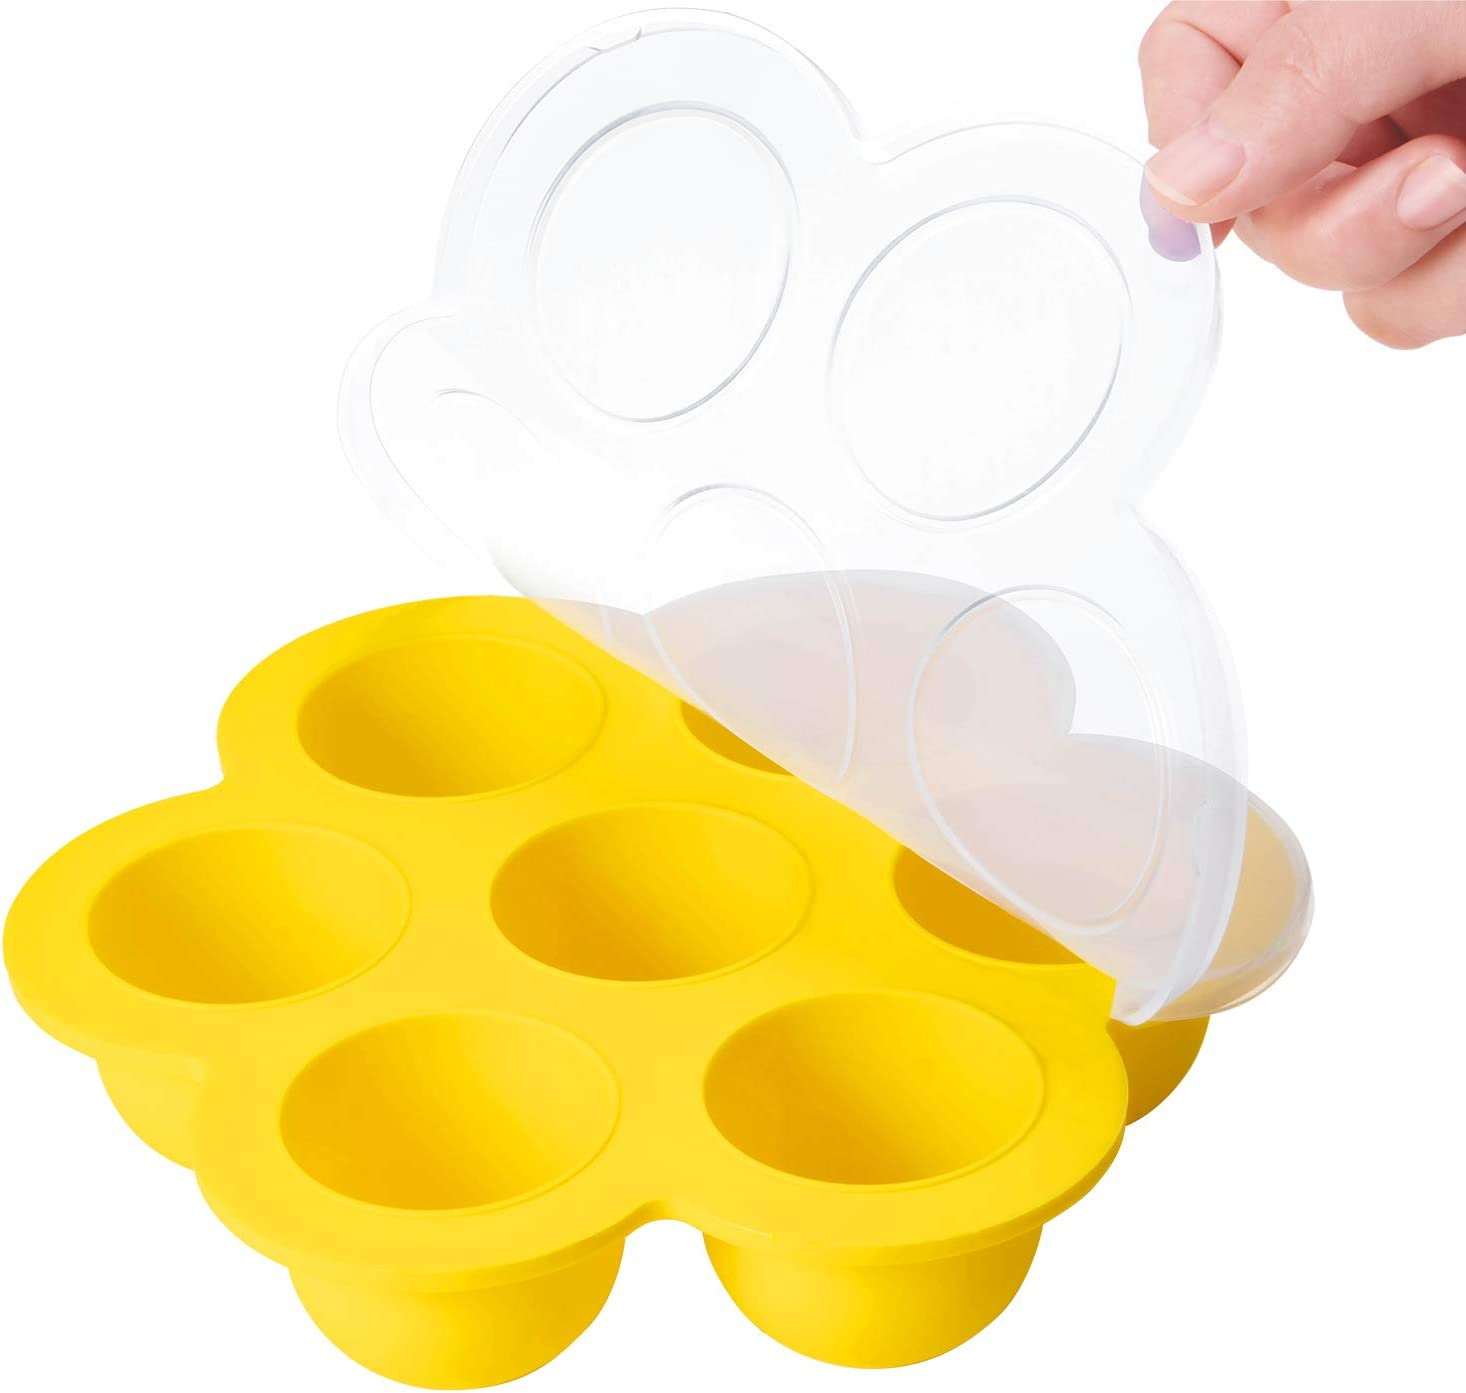 Blest Silicone Egg Bites Mold for Instant Pot Accessories,Oven,Easy to Pop Out,Oven-Safe Up to 446℉,BPA Free,No Smell,for Making Egg Cakes,Pudding,Yogurt,Rice Balls,Dishwasher Safe.